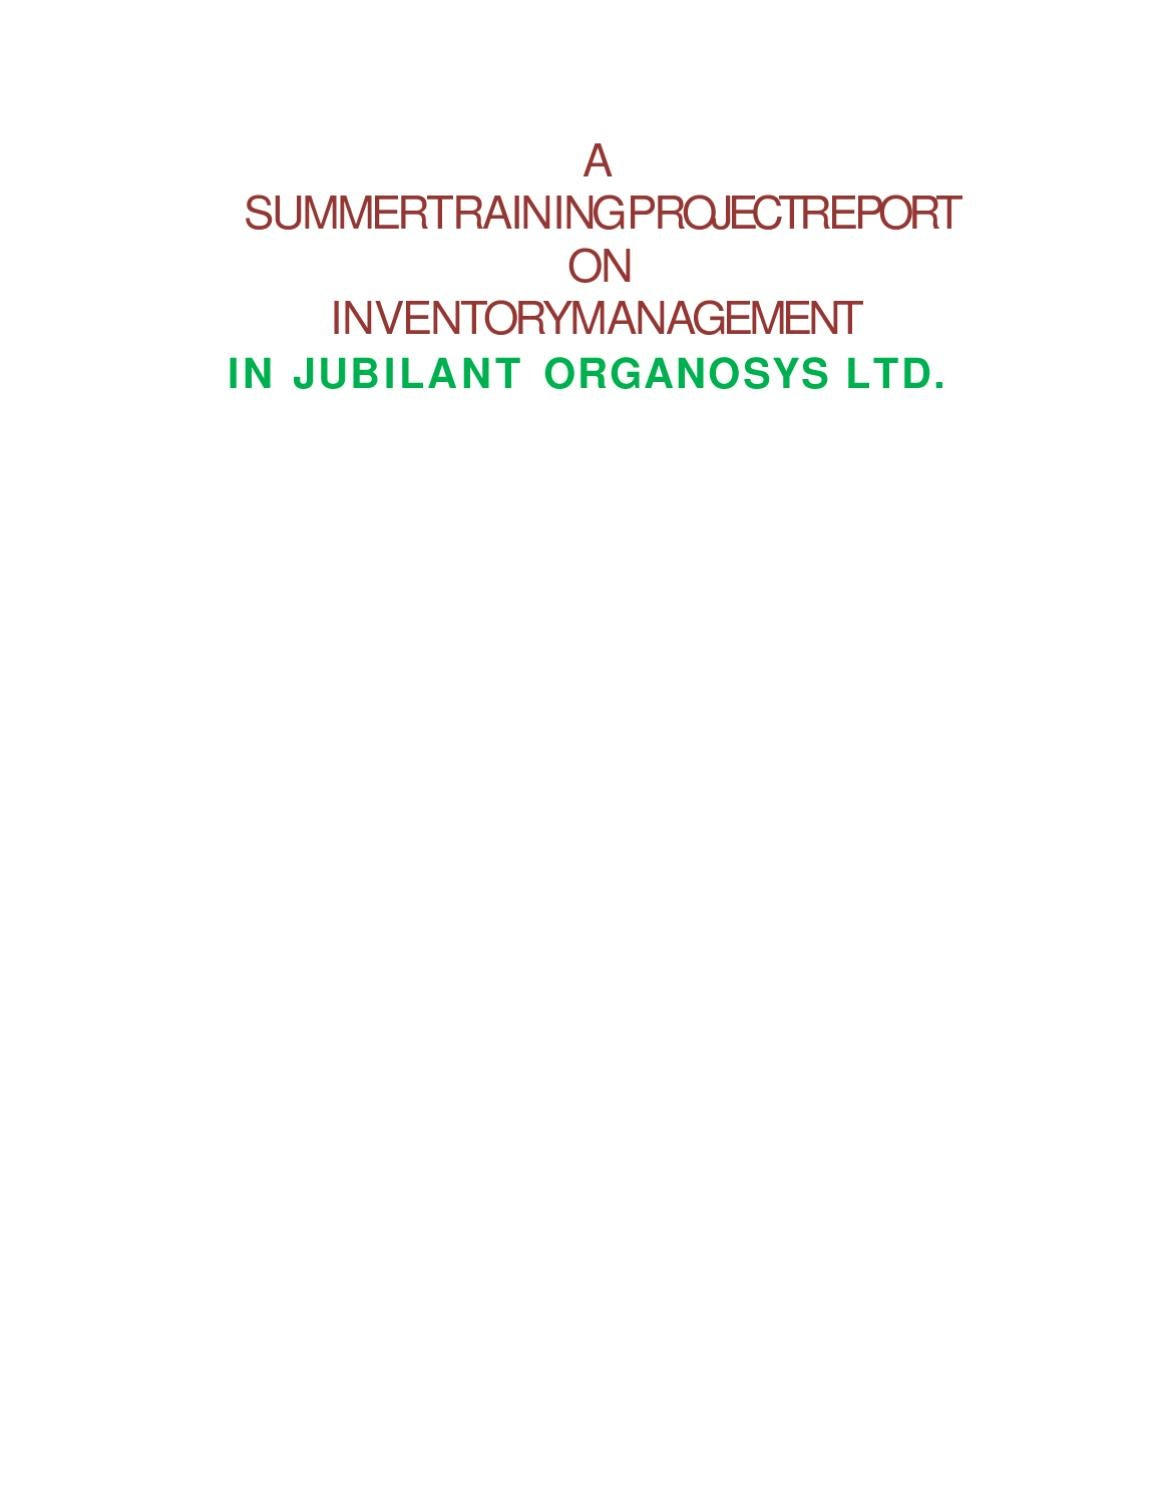 TRAINING PROJECT REPORT ON INVENTORY MANAGEMENT by Sanjay